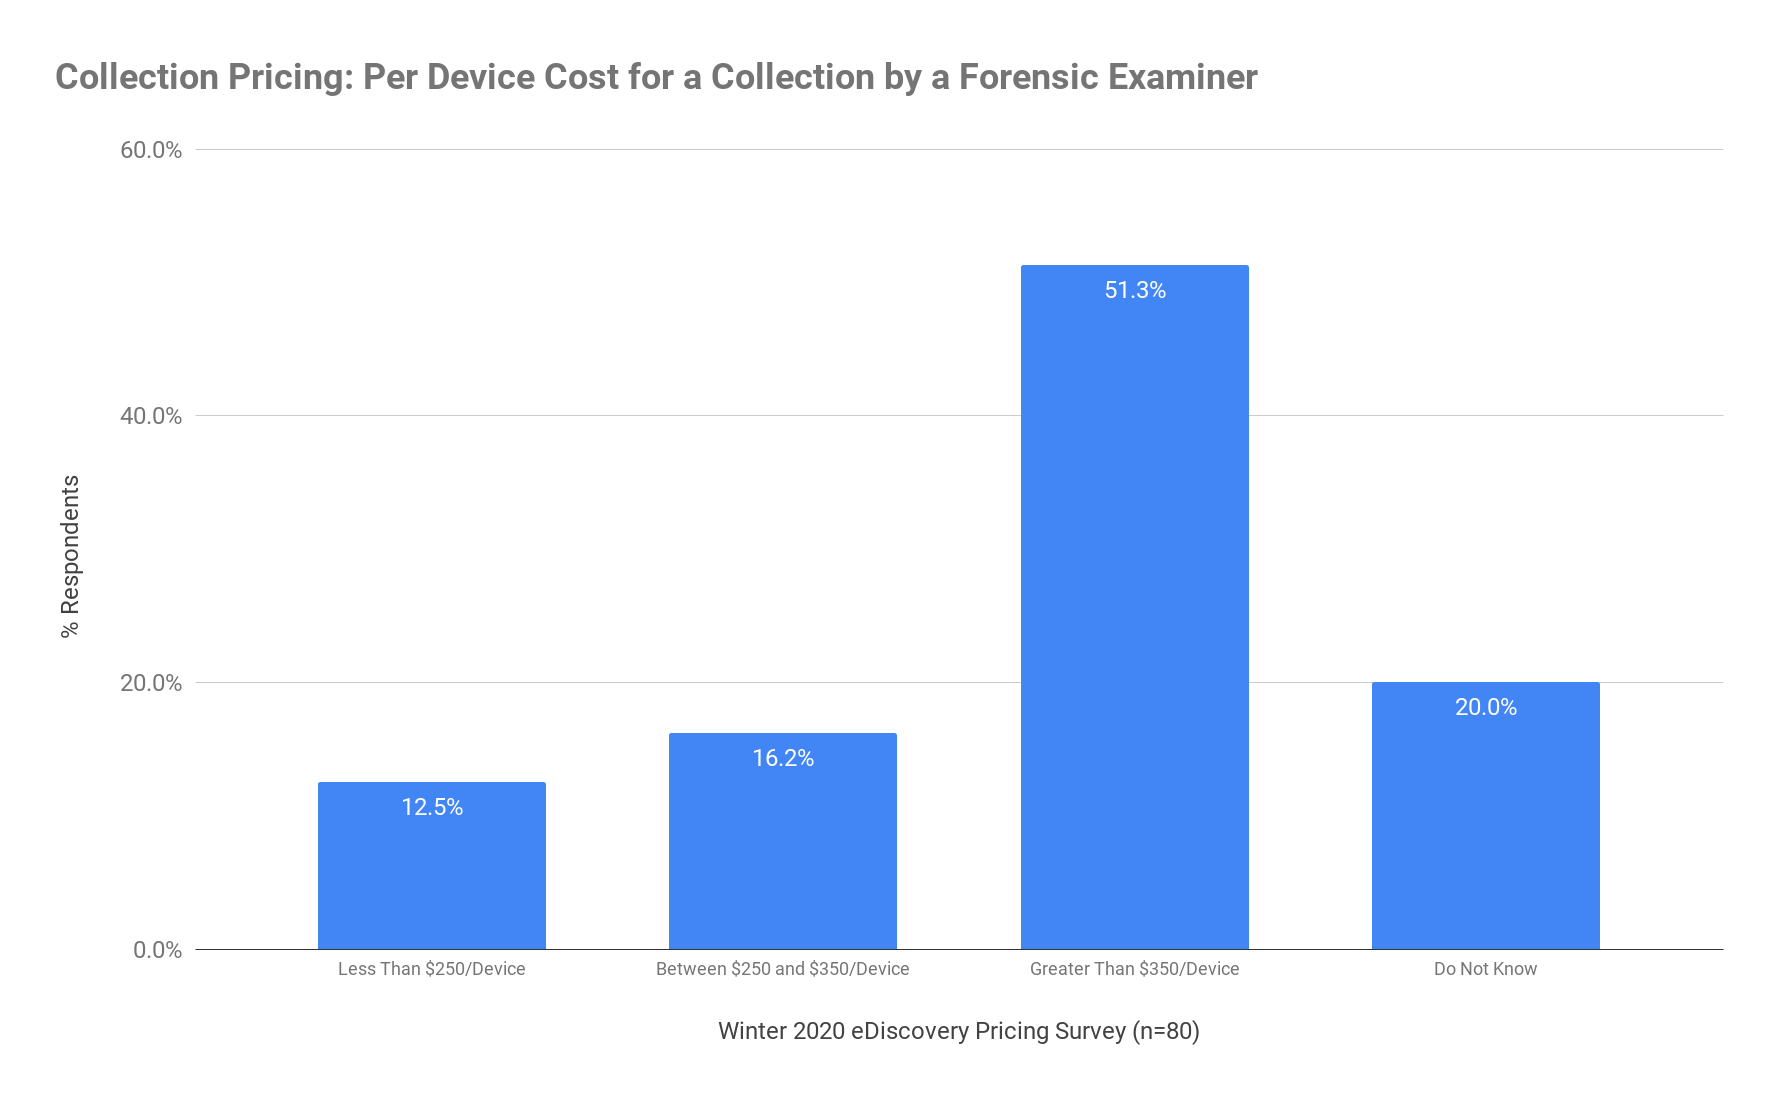 Collection Pricing - Per Device Cost for a Collection by a Forensic Examiner - Winter 2020